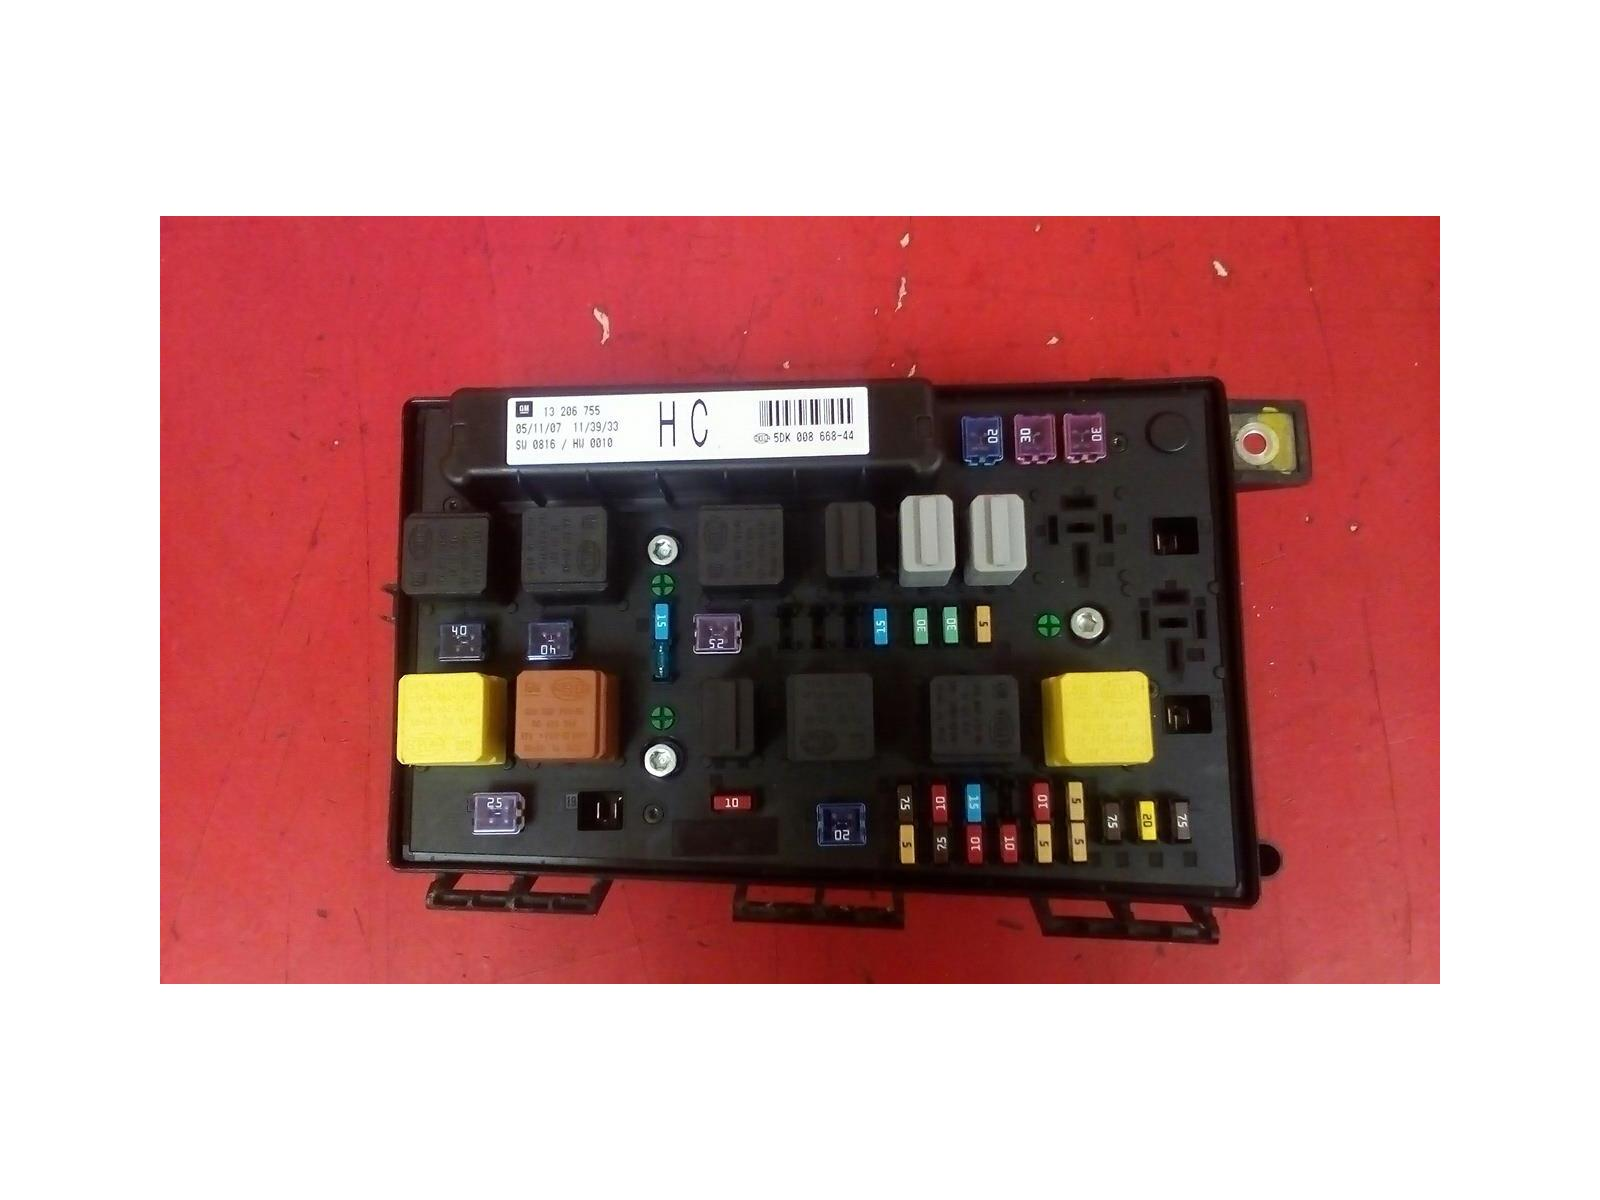 VAUXHALL ASTRA H MK5 FRONT BCM UEC HC ELECTRIC CONTROL FUSE BOX 2004-2010